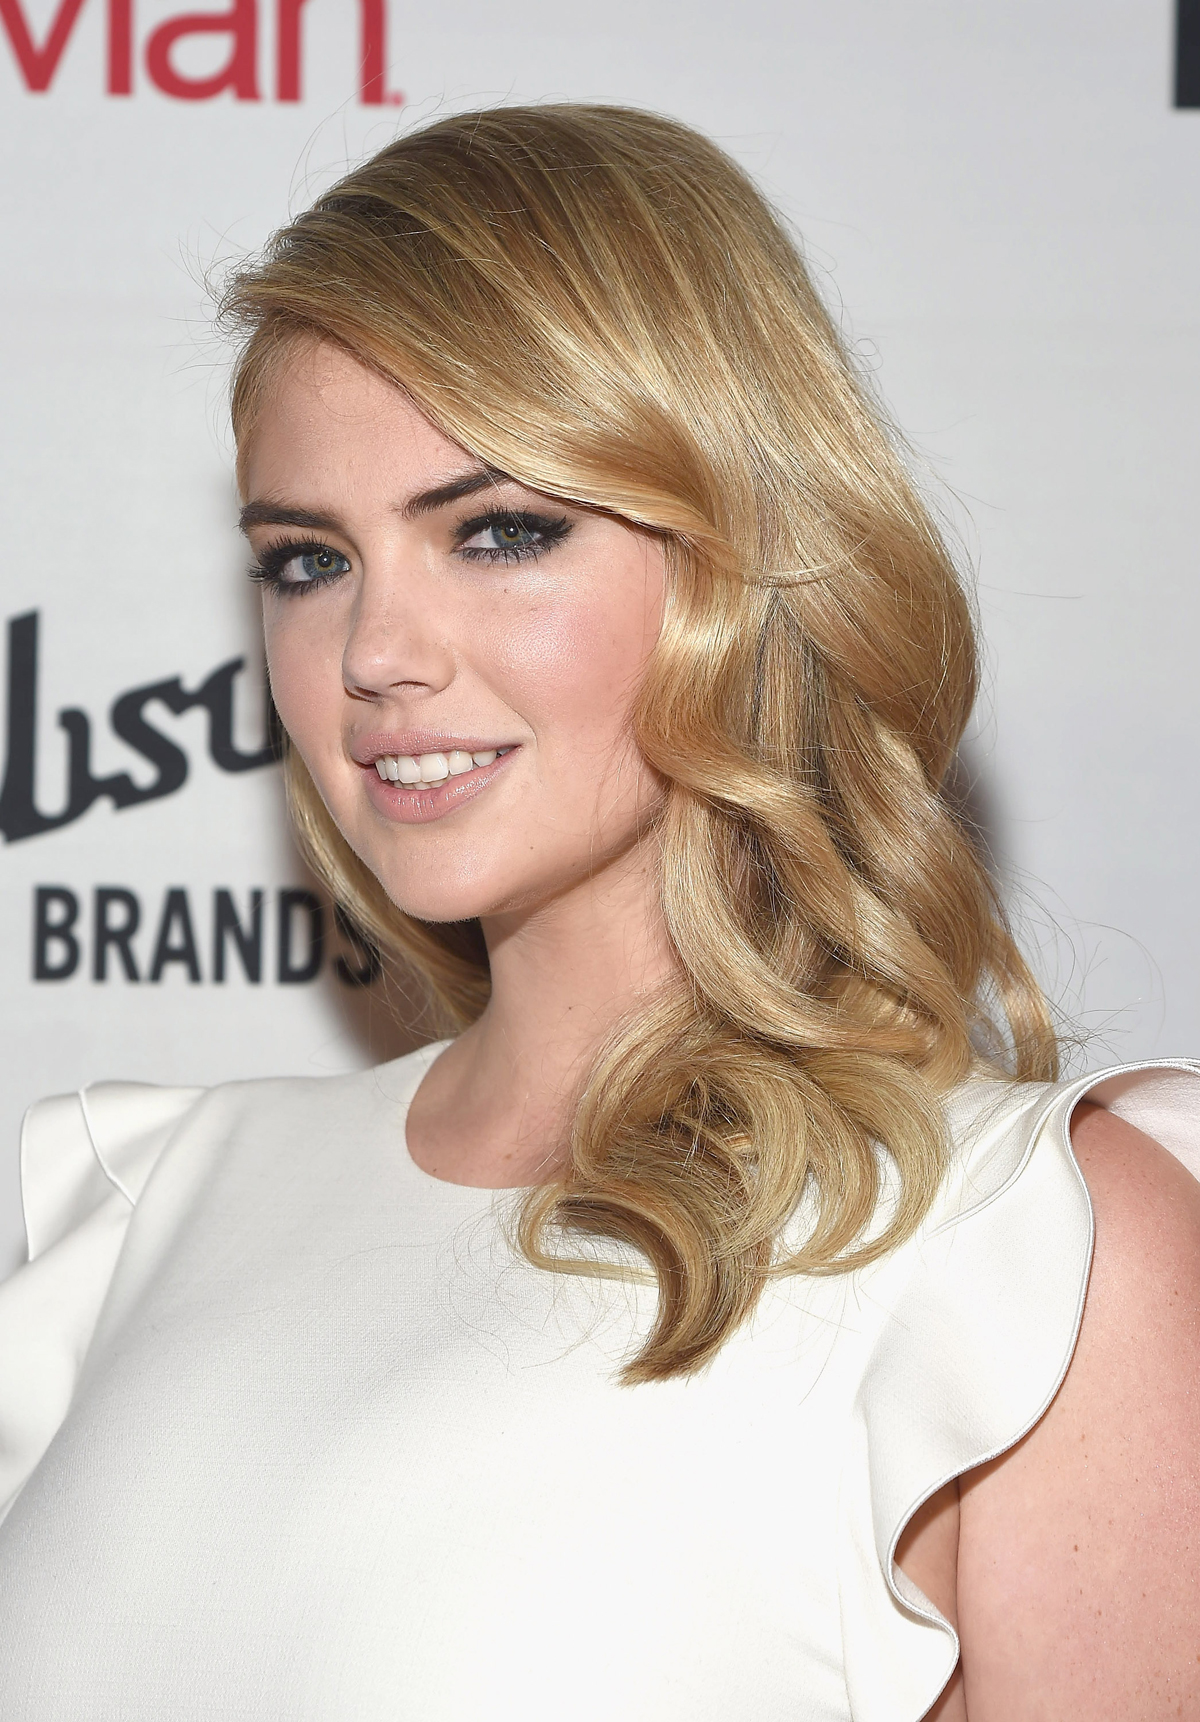 Kate Upton at The Daily Front Row Fashion Media Awards on 9/5/2014